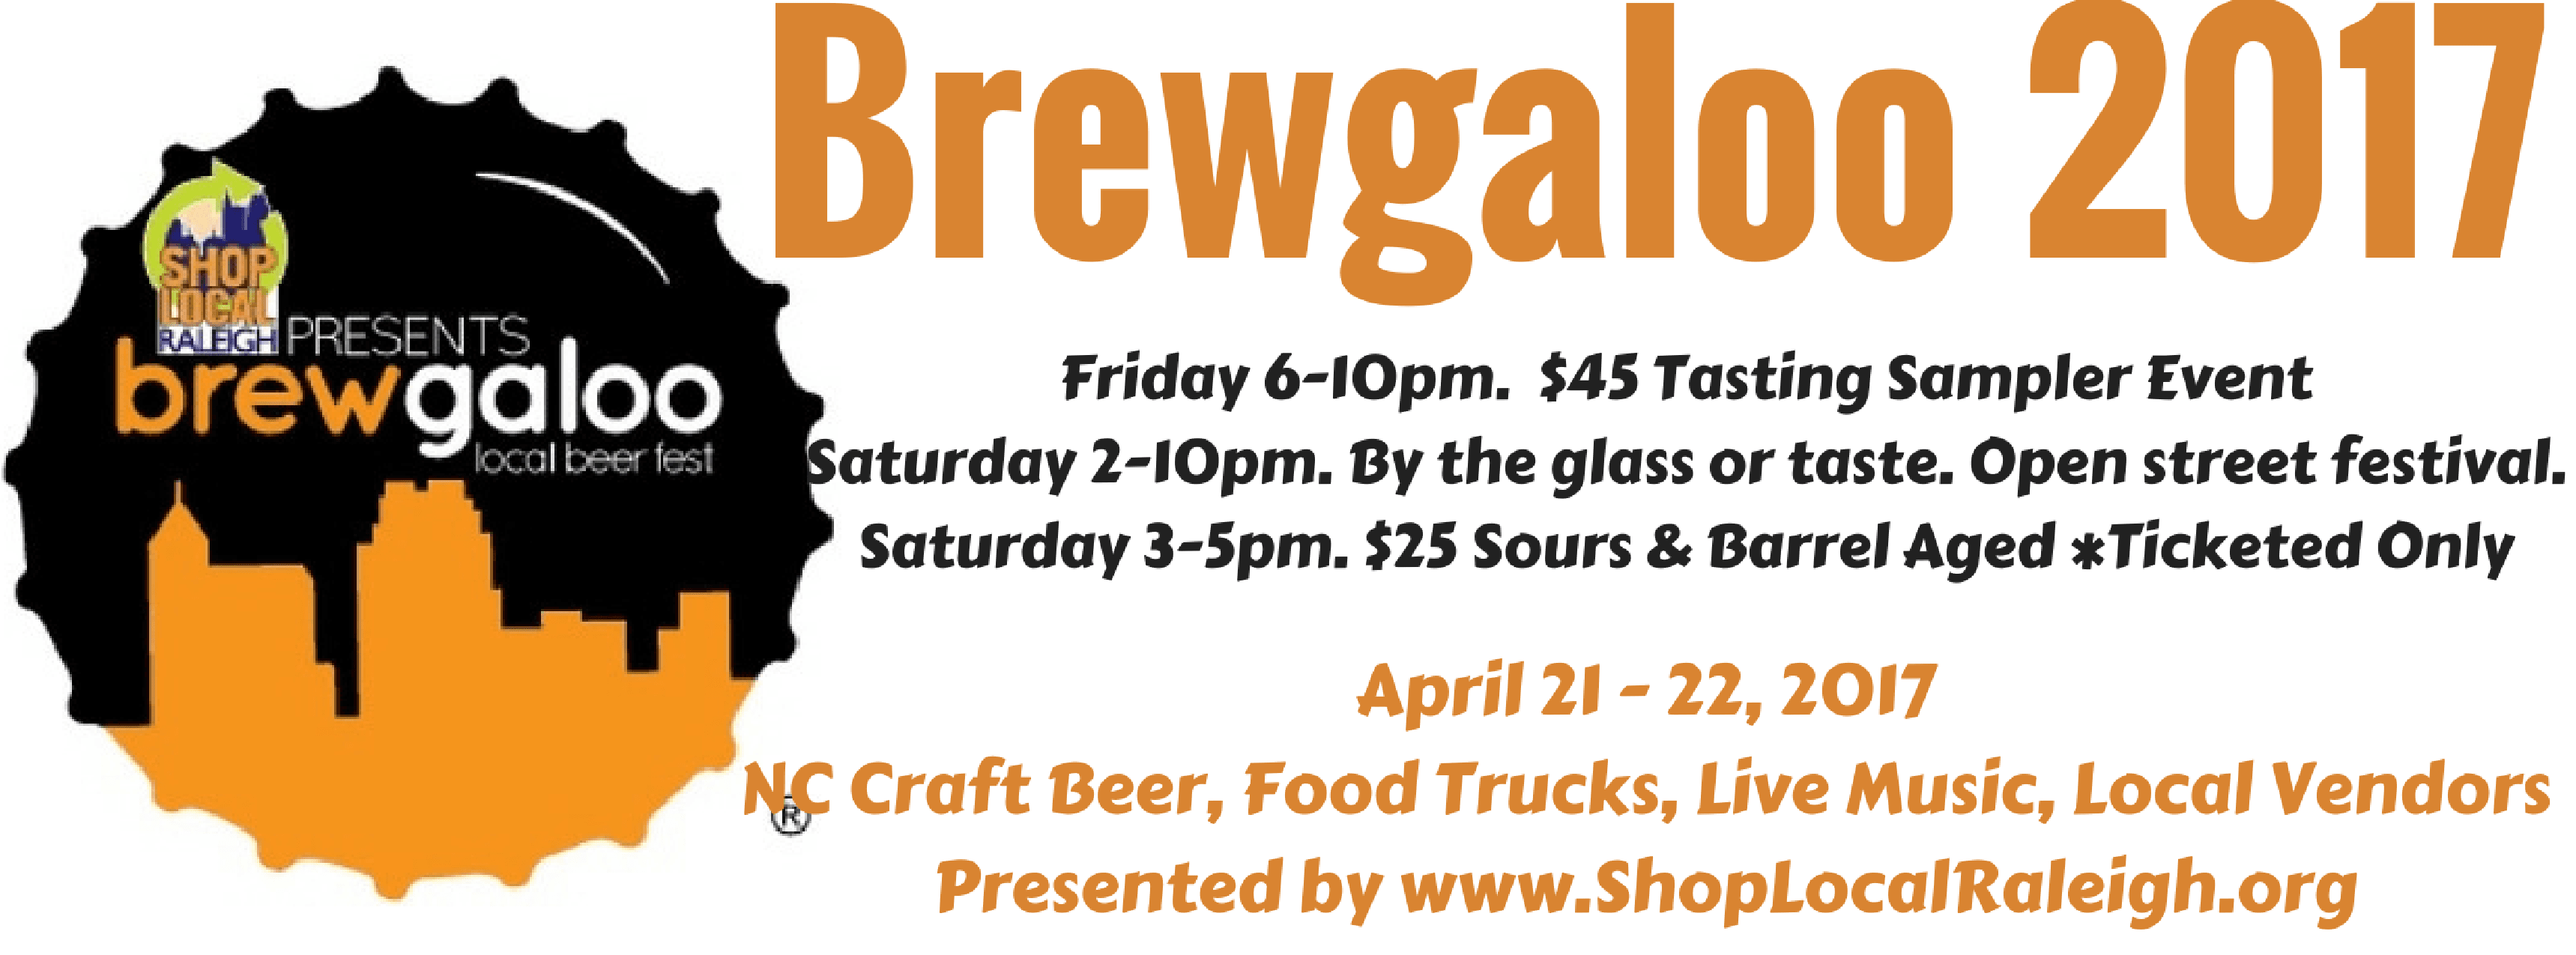 Brewgaloo 2017 shop local raleigh for Craft shows in nc 2017